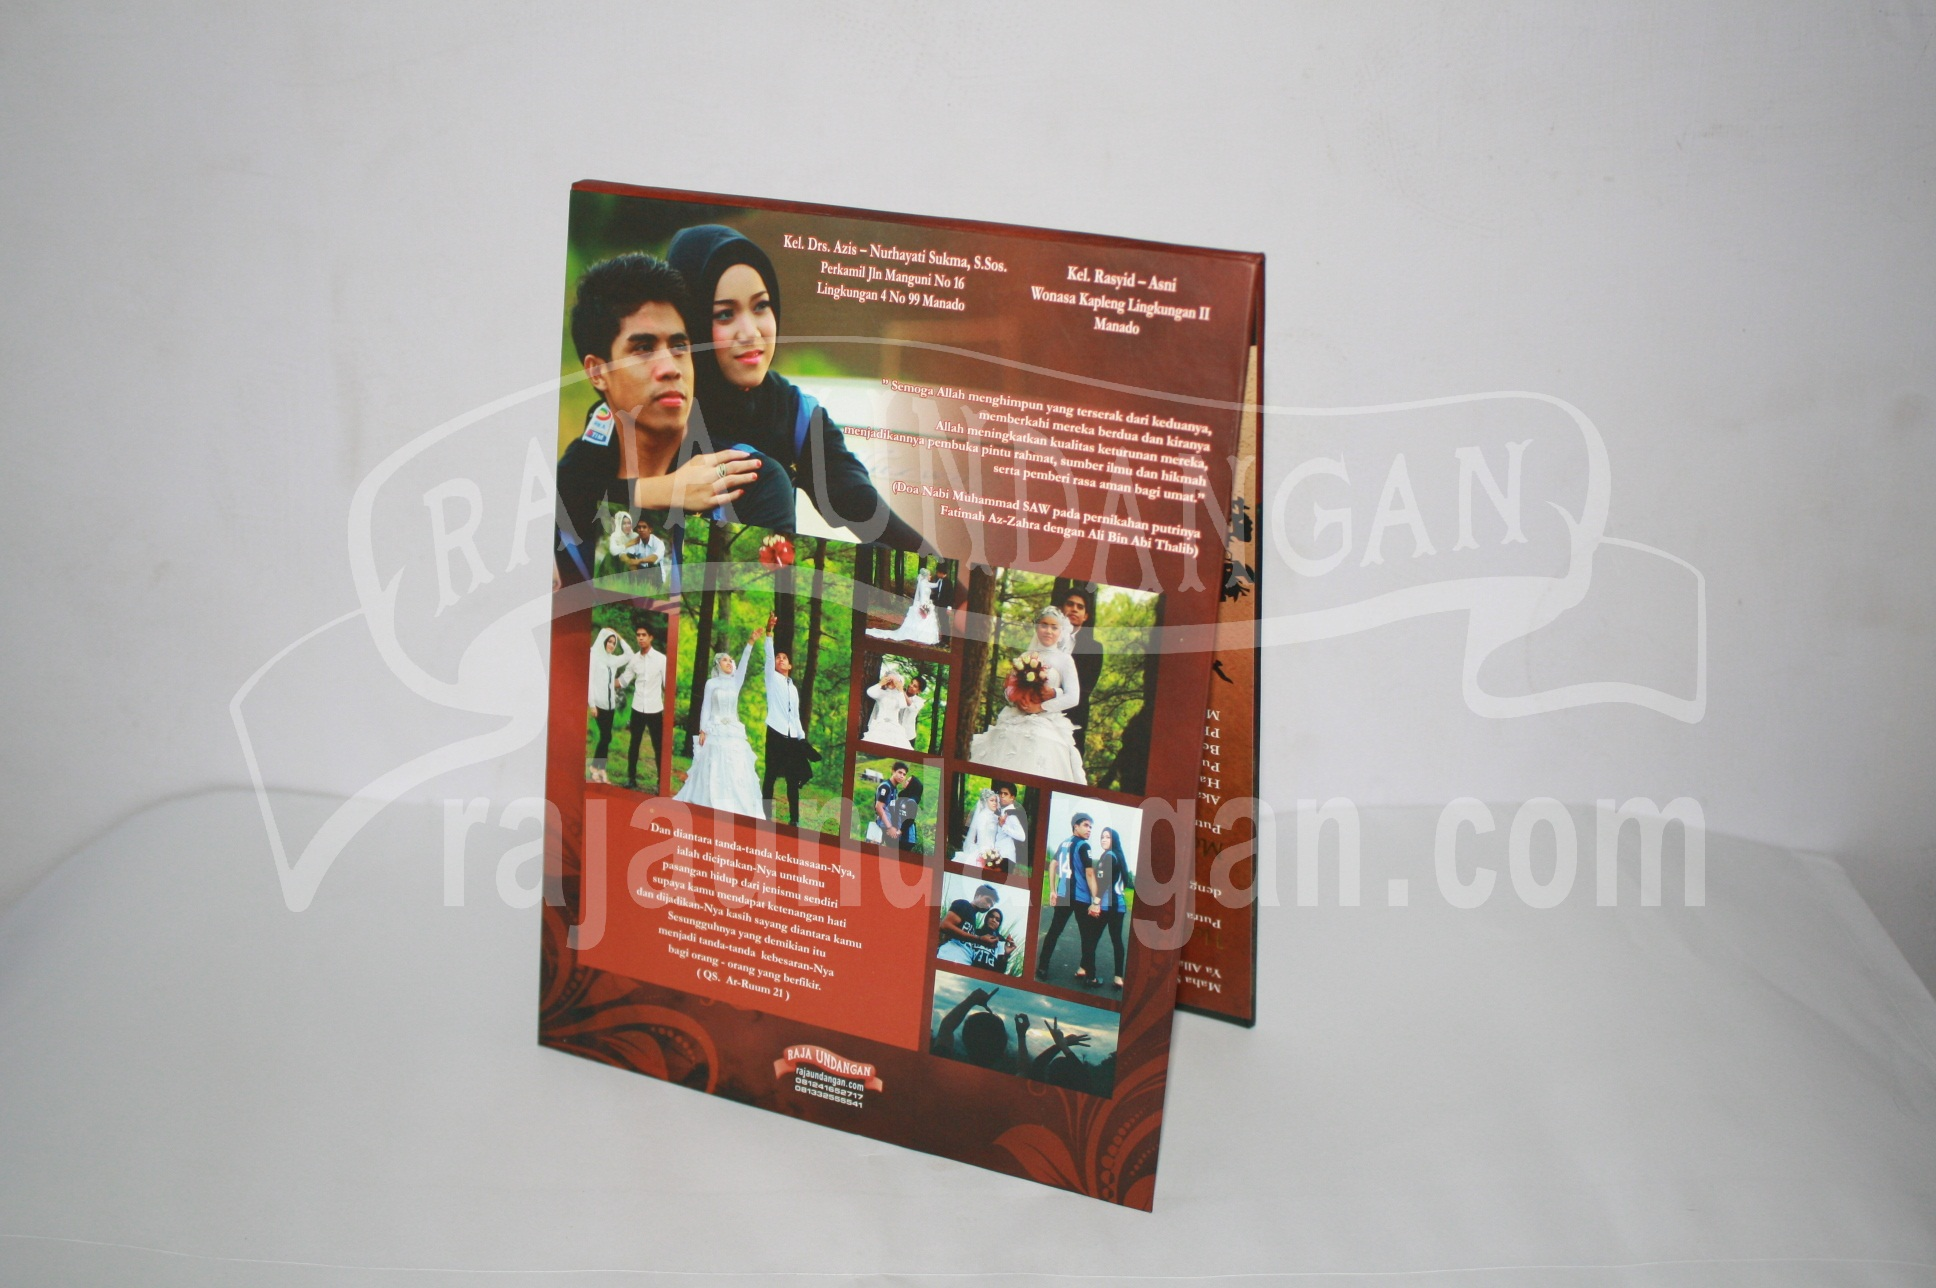 Undangan Pernikahan Hardcover Pop Up Heri dan Mona EDC 43 12 - Pesan Wedding Invitations Eksklusif di Karang Poh